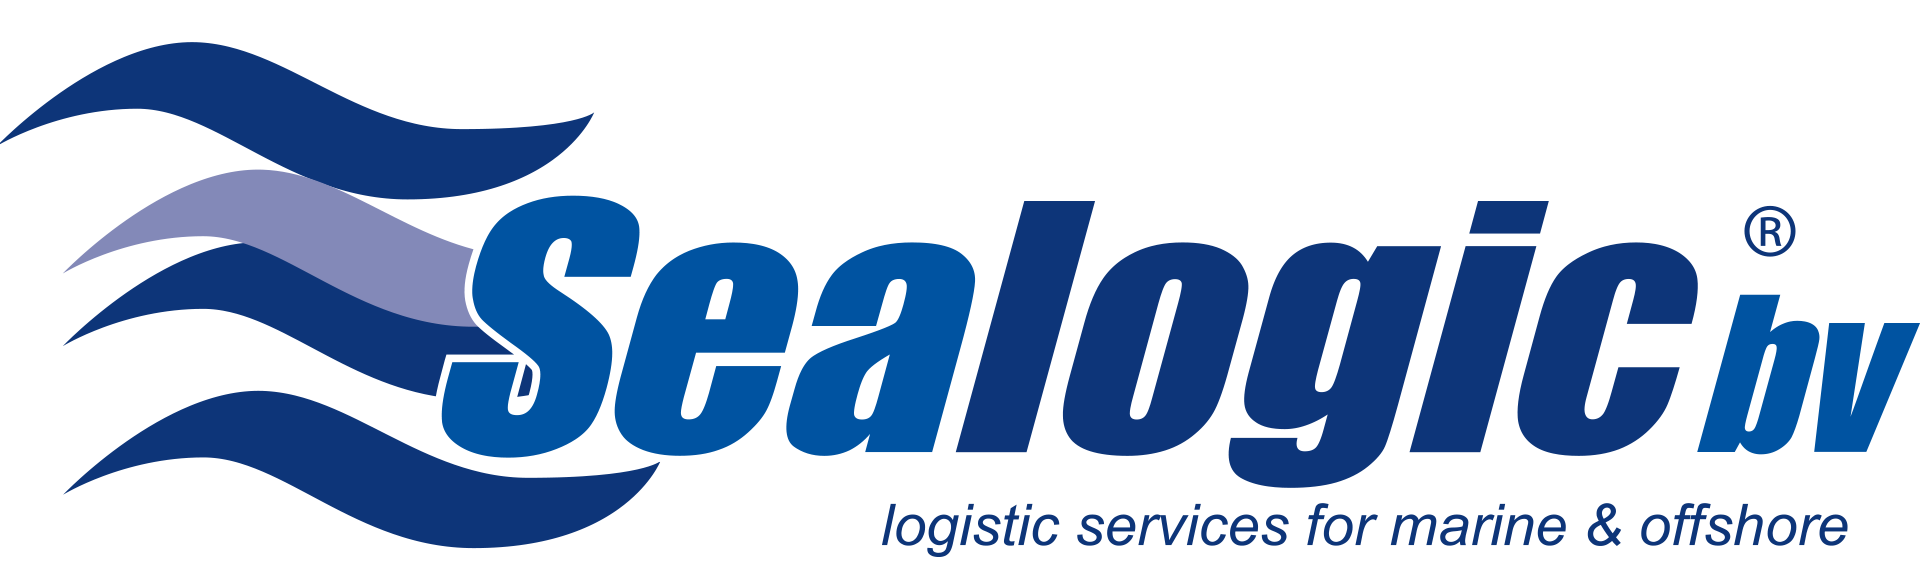 sealogic logo